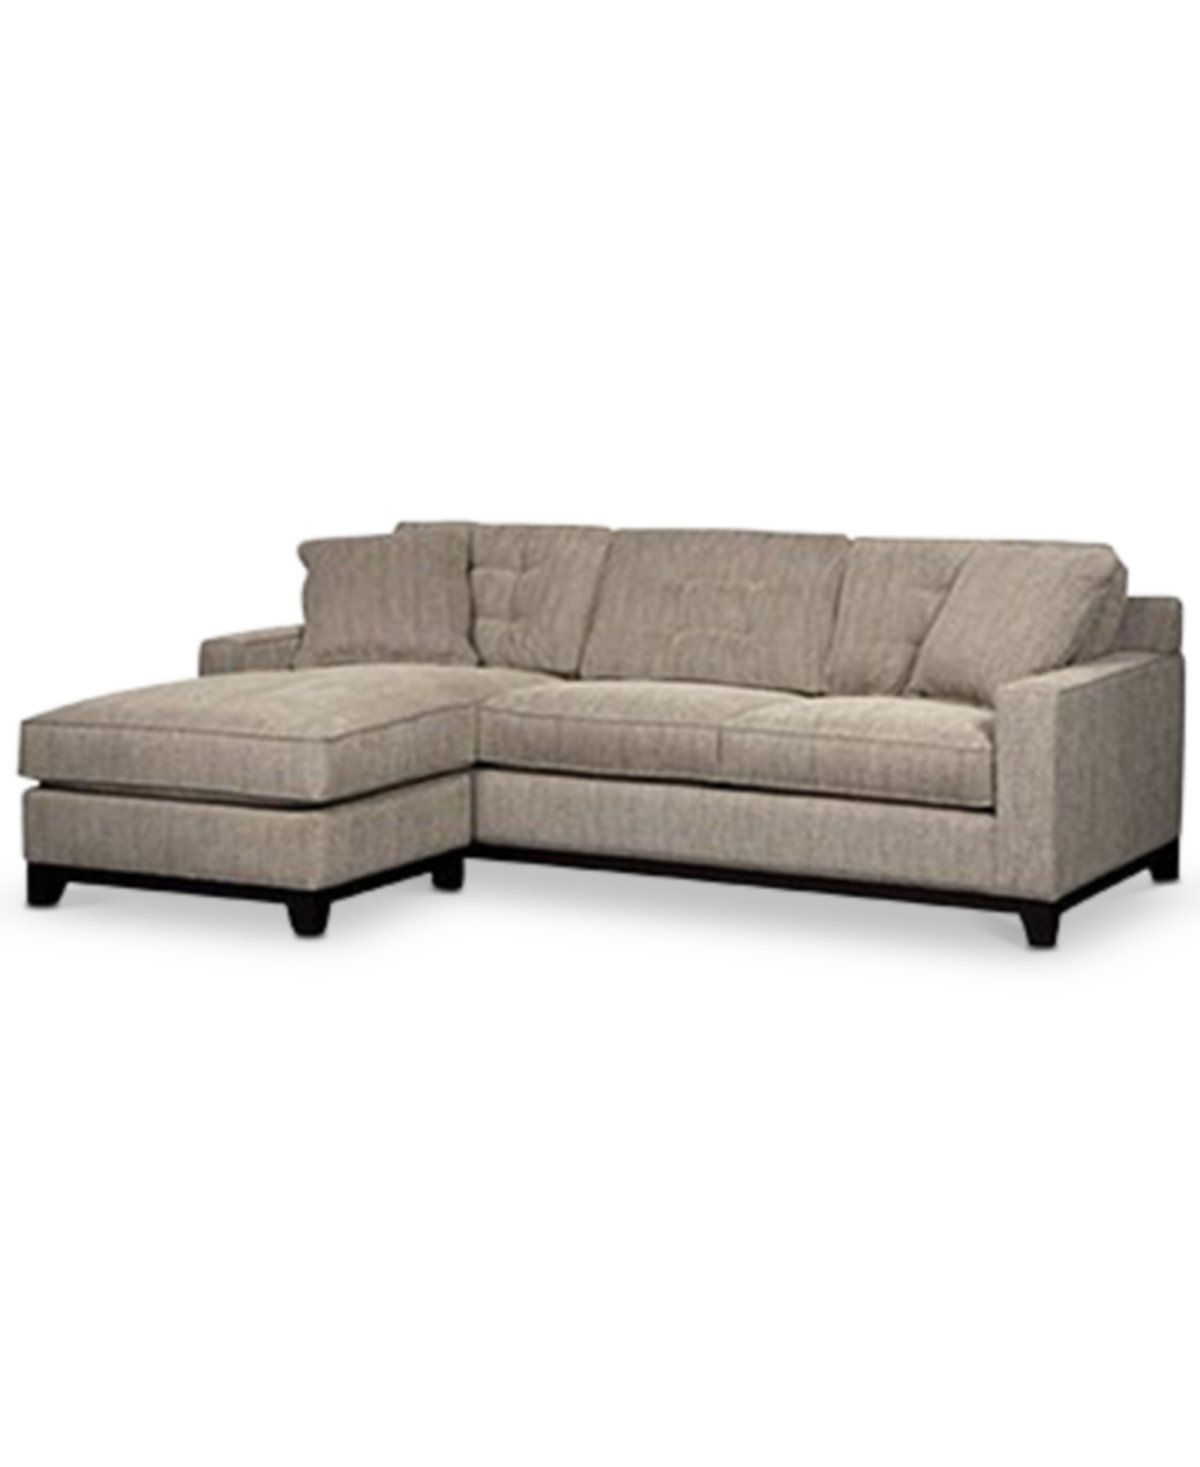 Fabric Sectional Sofas With Chaise Clarke Fabric 2-piece Sectional Sofa With Chaise, Only At